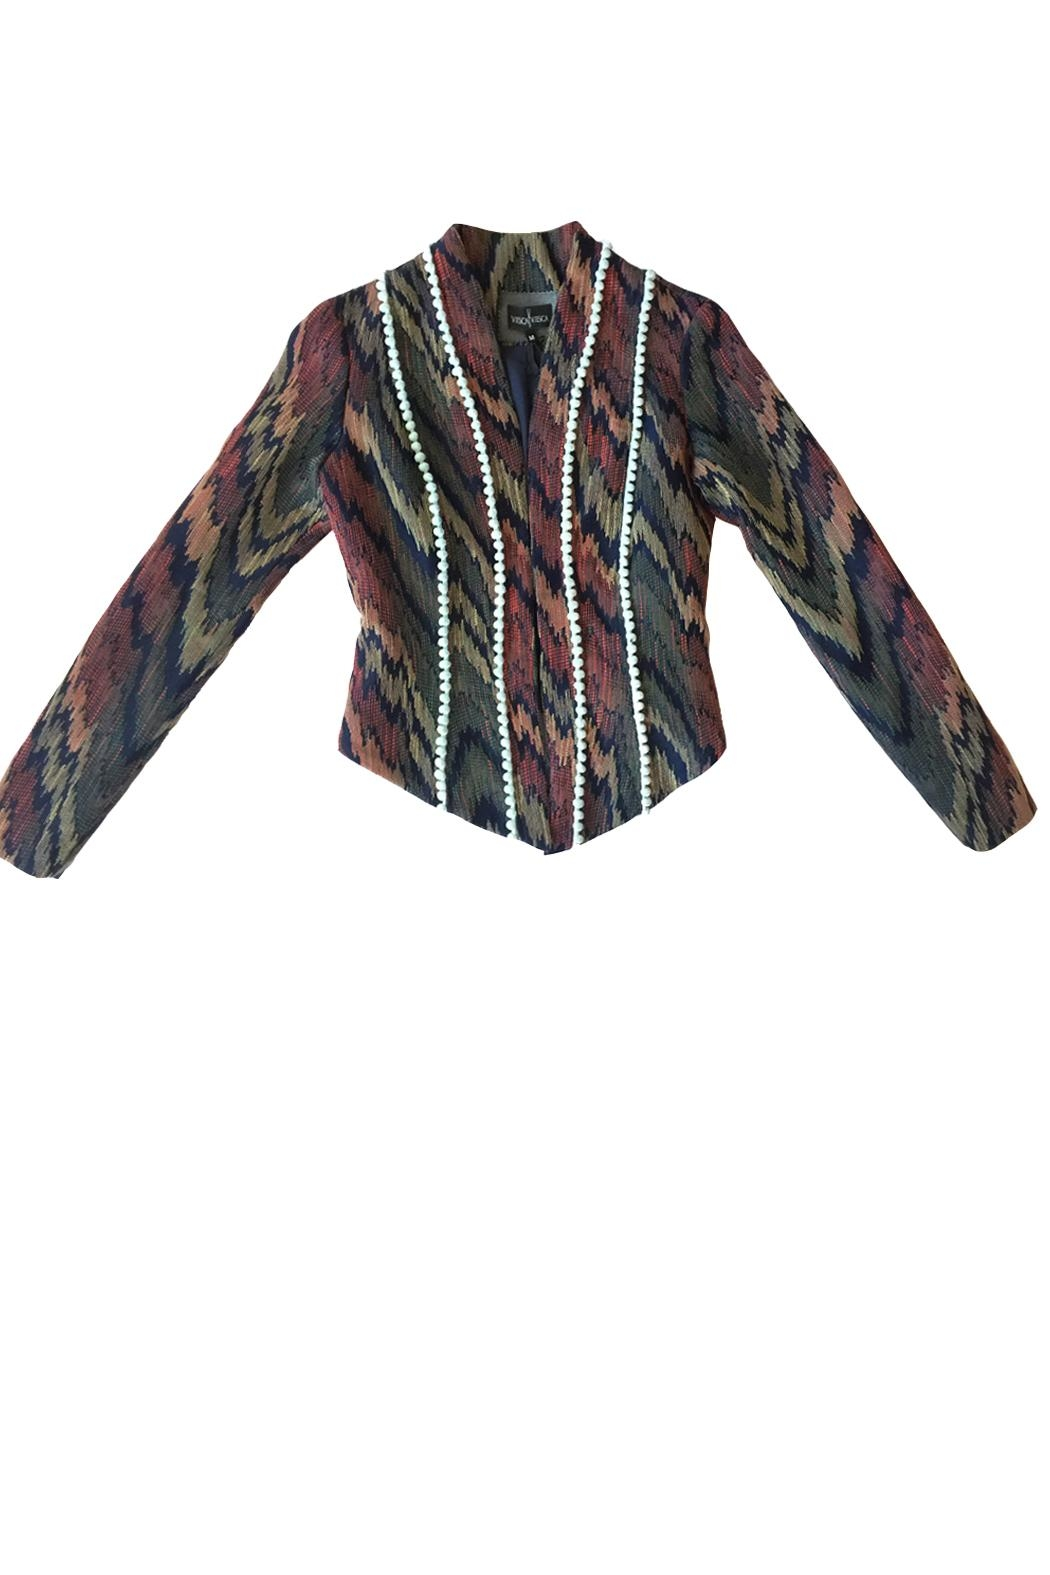 Viesca y Viesca Printed Fitted Blazer - Front Full Image